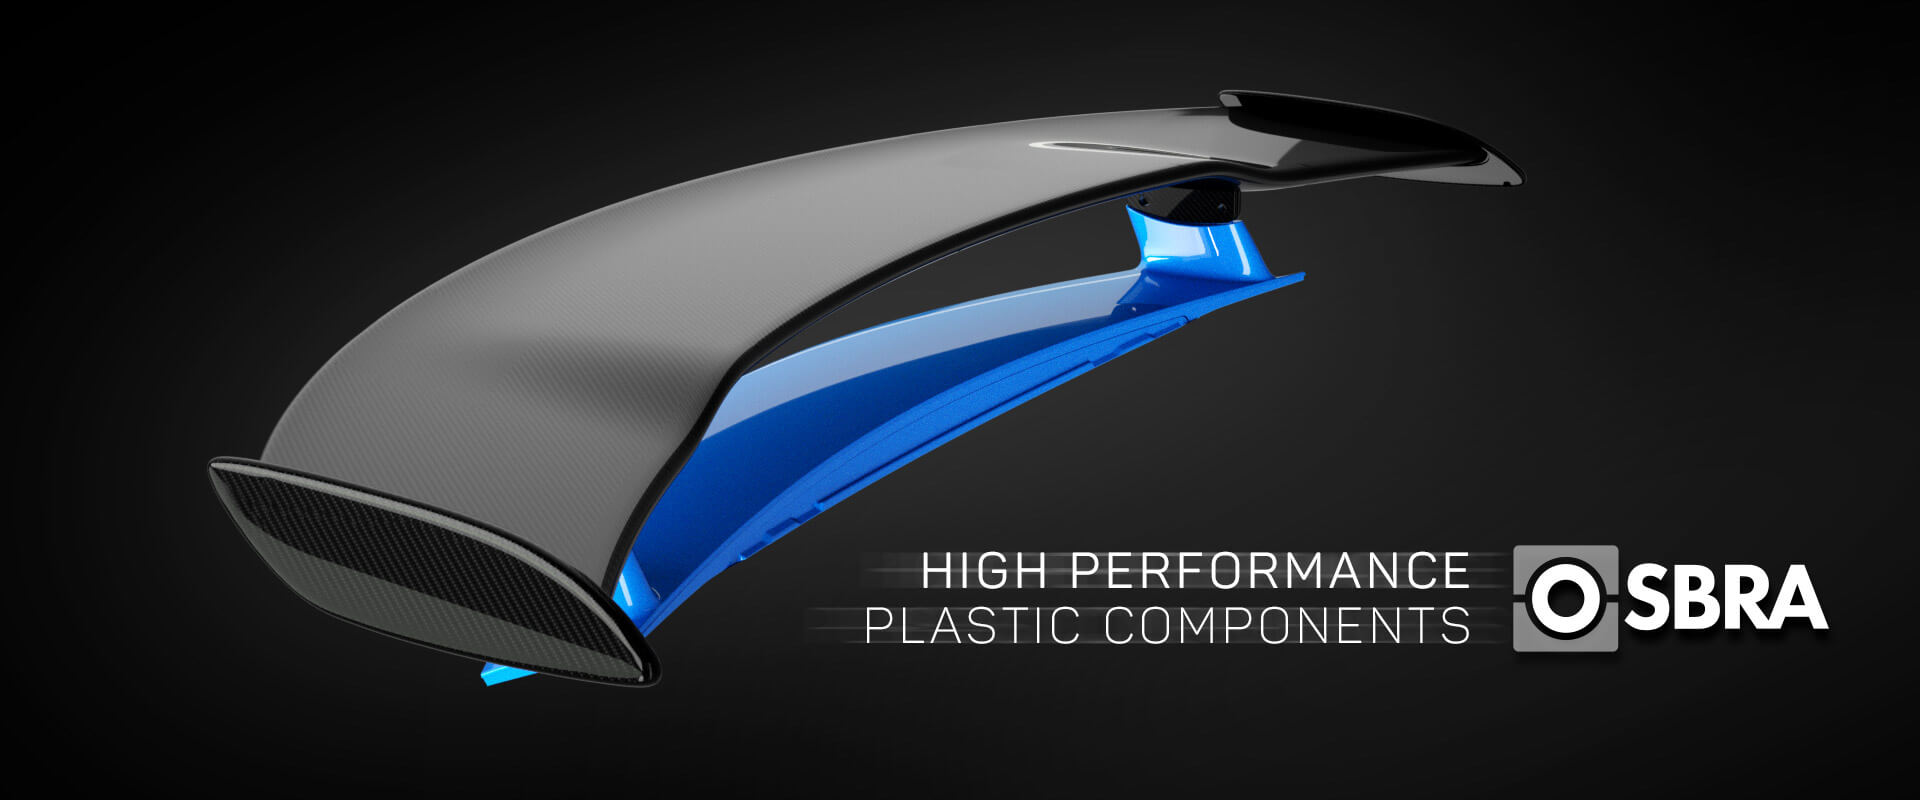 OSBRA High Performance plastic components